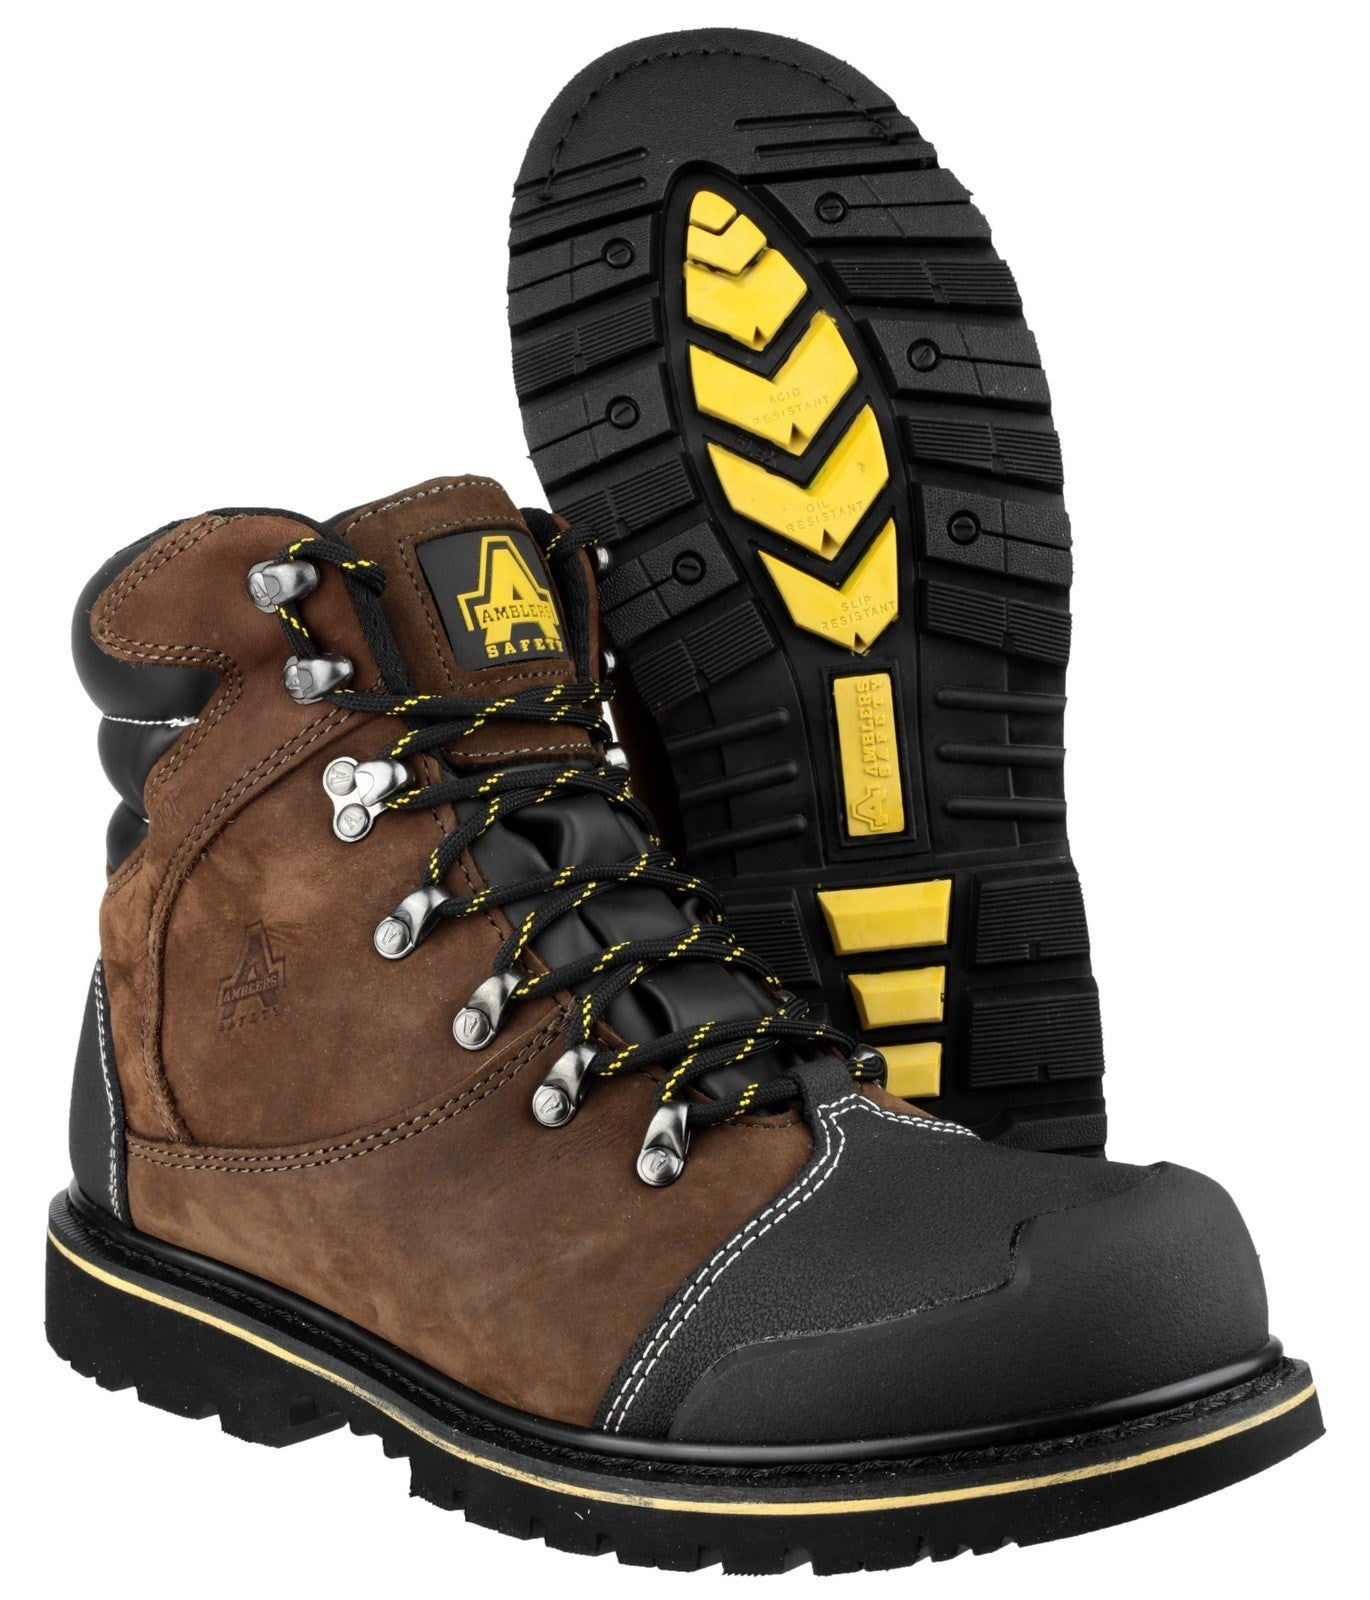 FS227 Goodyear Welted Waterproof Lace Up Industrial Safety Boot